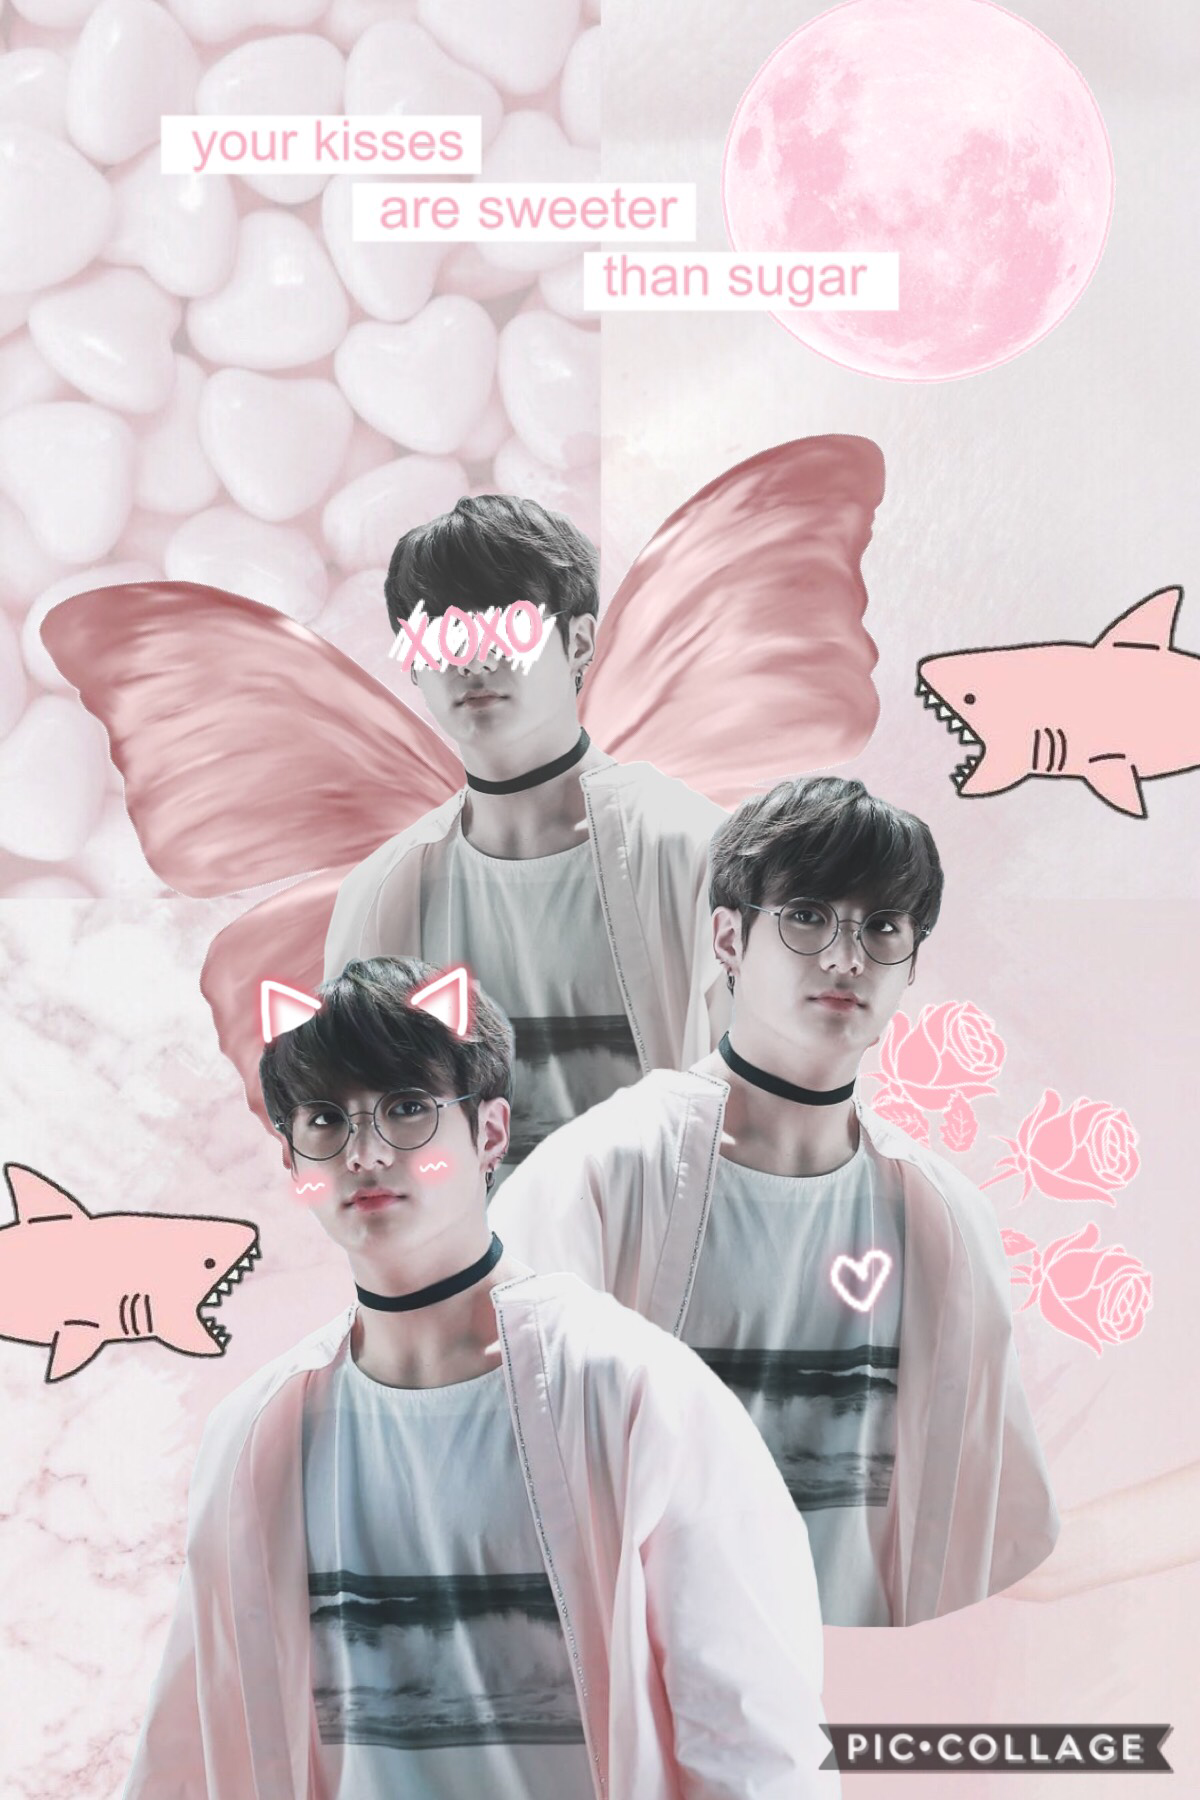 💕Tap💕  @-euphoria you inspired me to make a jk collage so this is dedicated to you  butterfly wings inspired by @jUsT-peachy 💜  the sharks would be my reaction if I saw jk irl 😮  qotd: should I start doing a qotd?